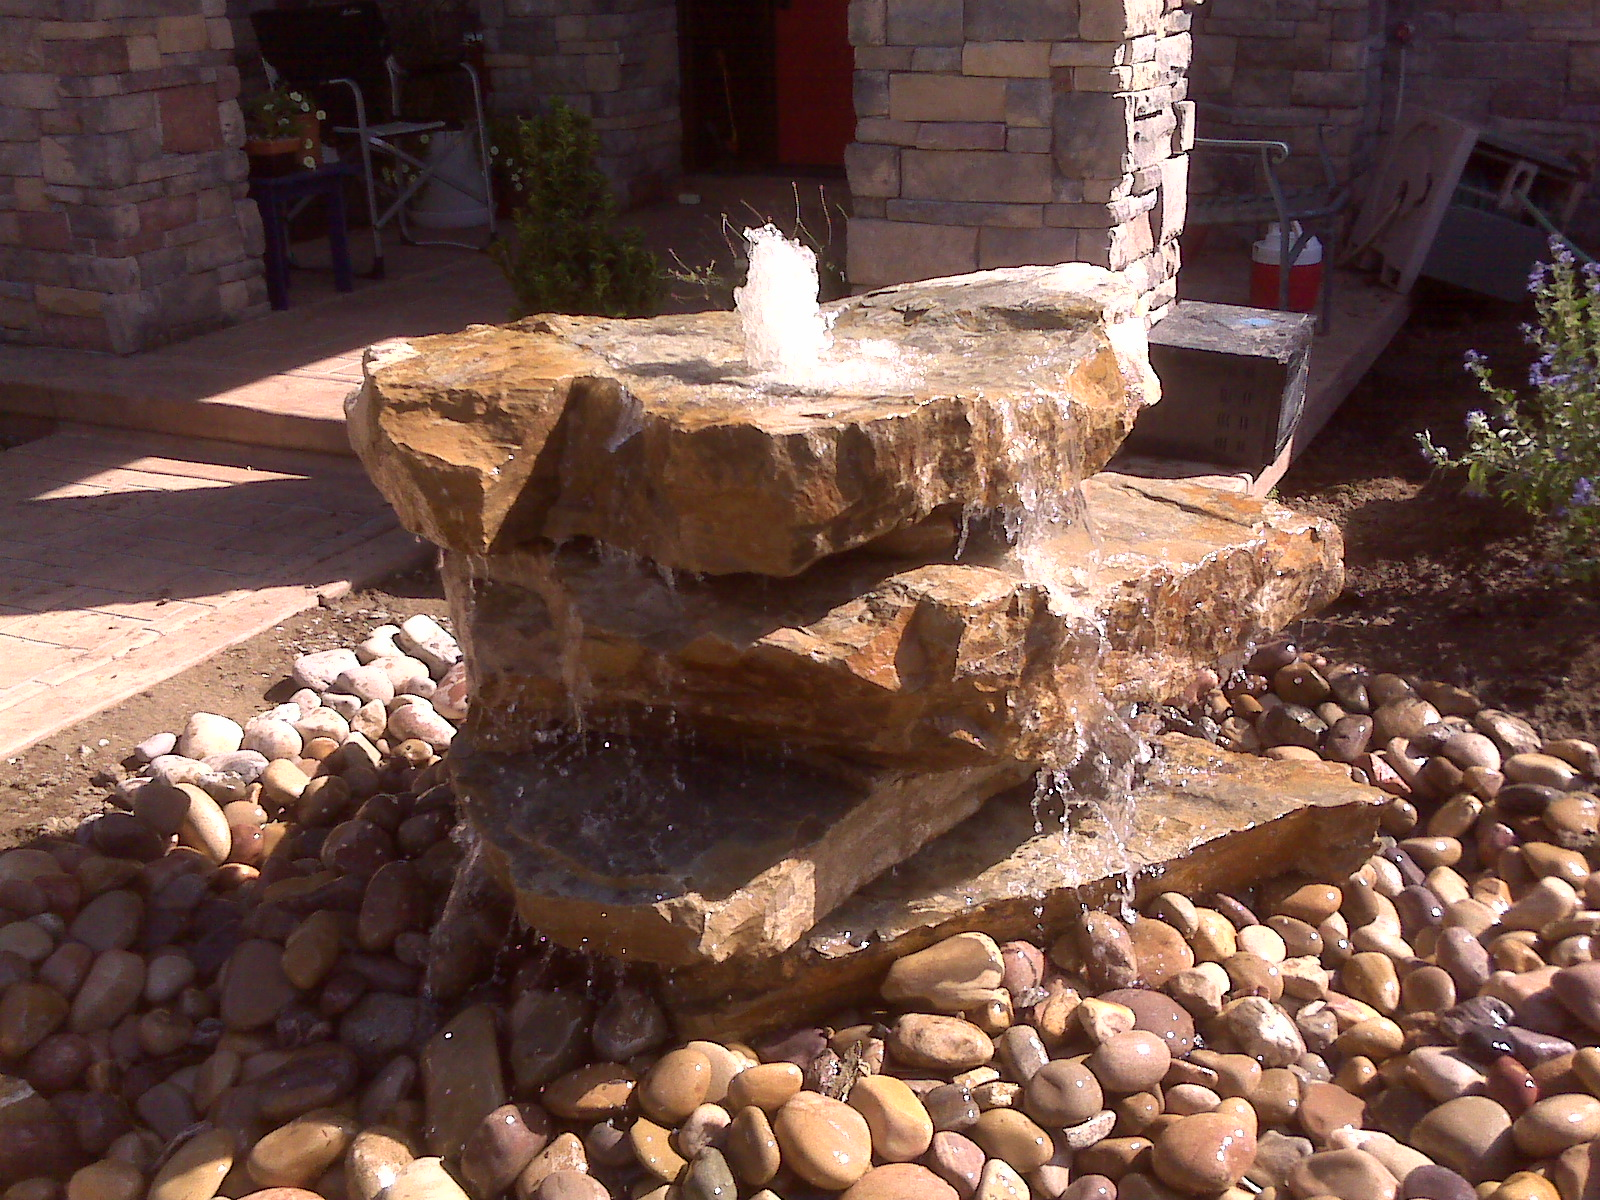 Utah landscapers landscaping relandscaping and adding waterfeatures water fountains with the - How to build an outdoor fountain with rocks ...